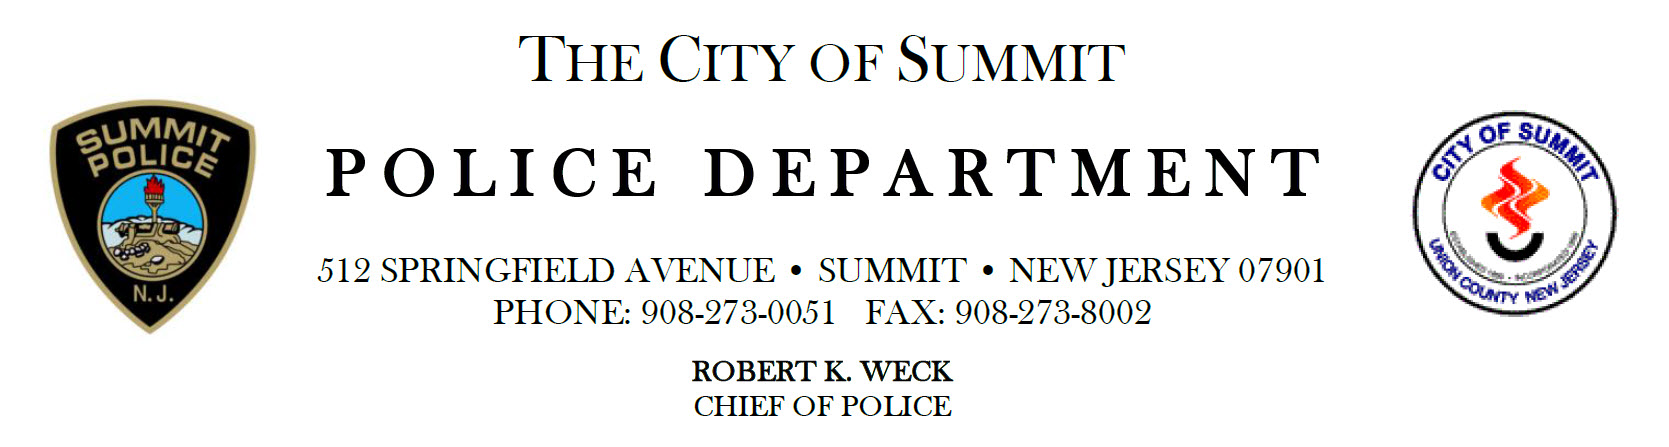 Summit Police Department, NJ Police Jobs